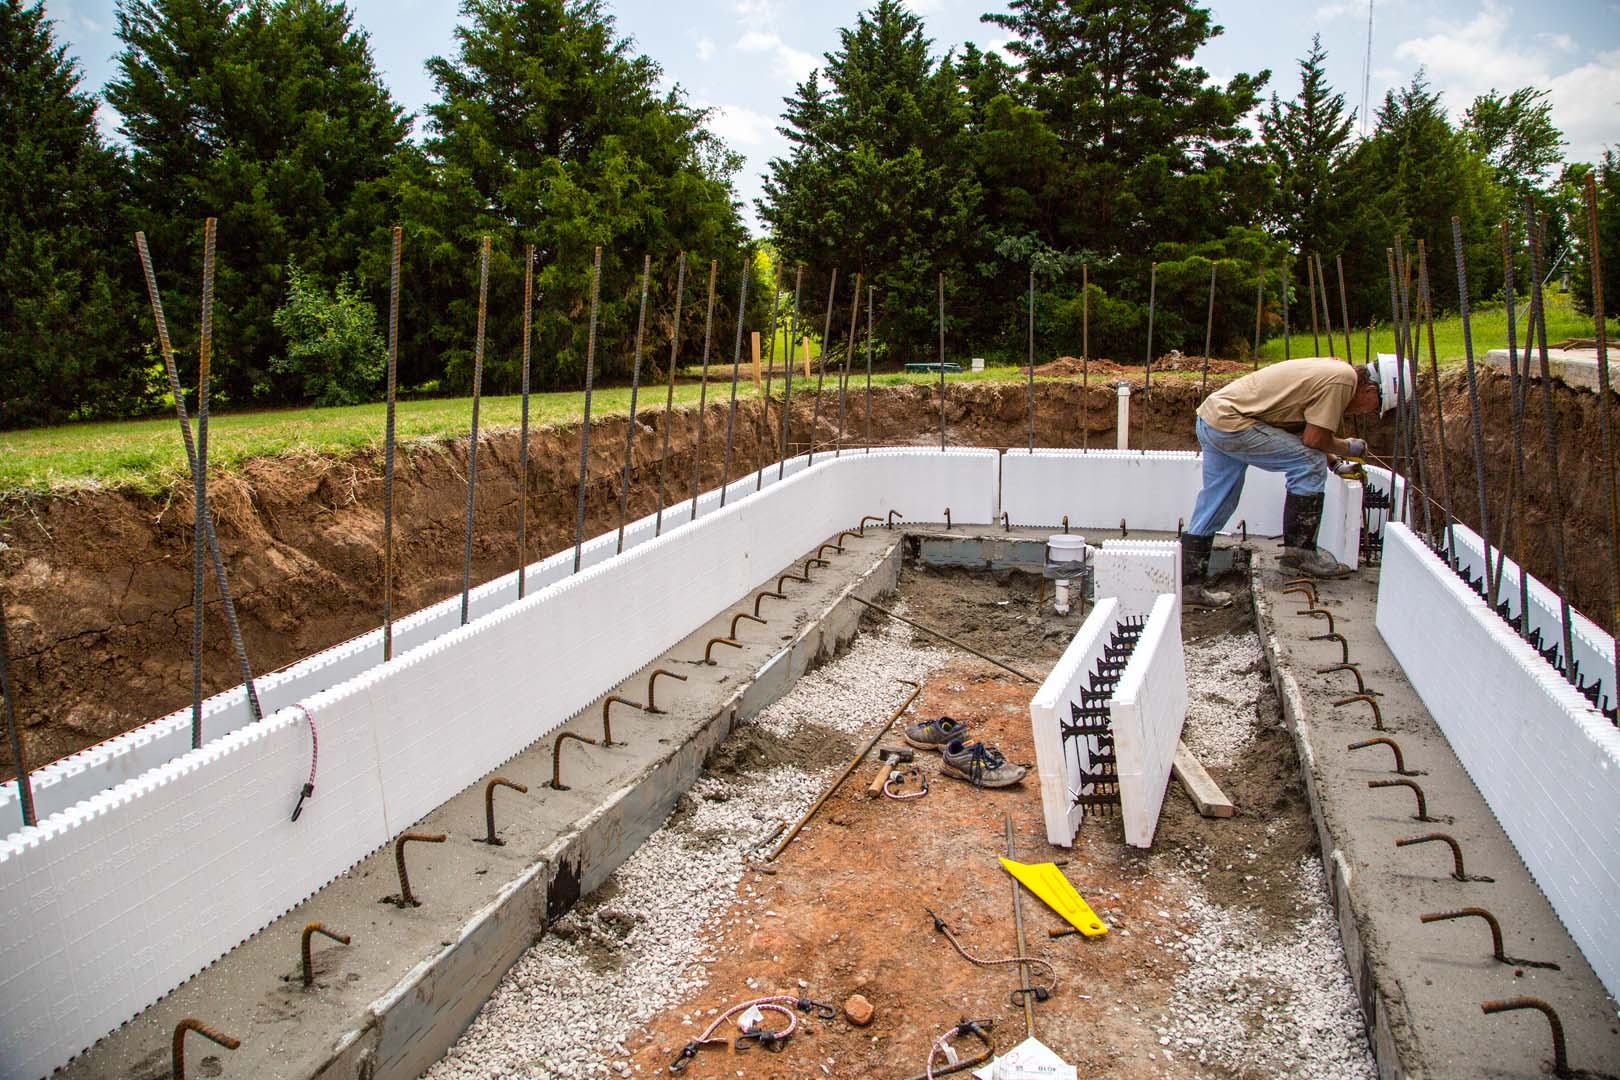 Icf swimming pools buildblock insulating concrete forms for Icf construction florida